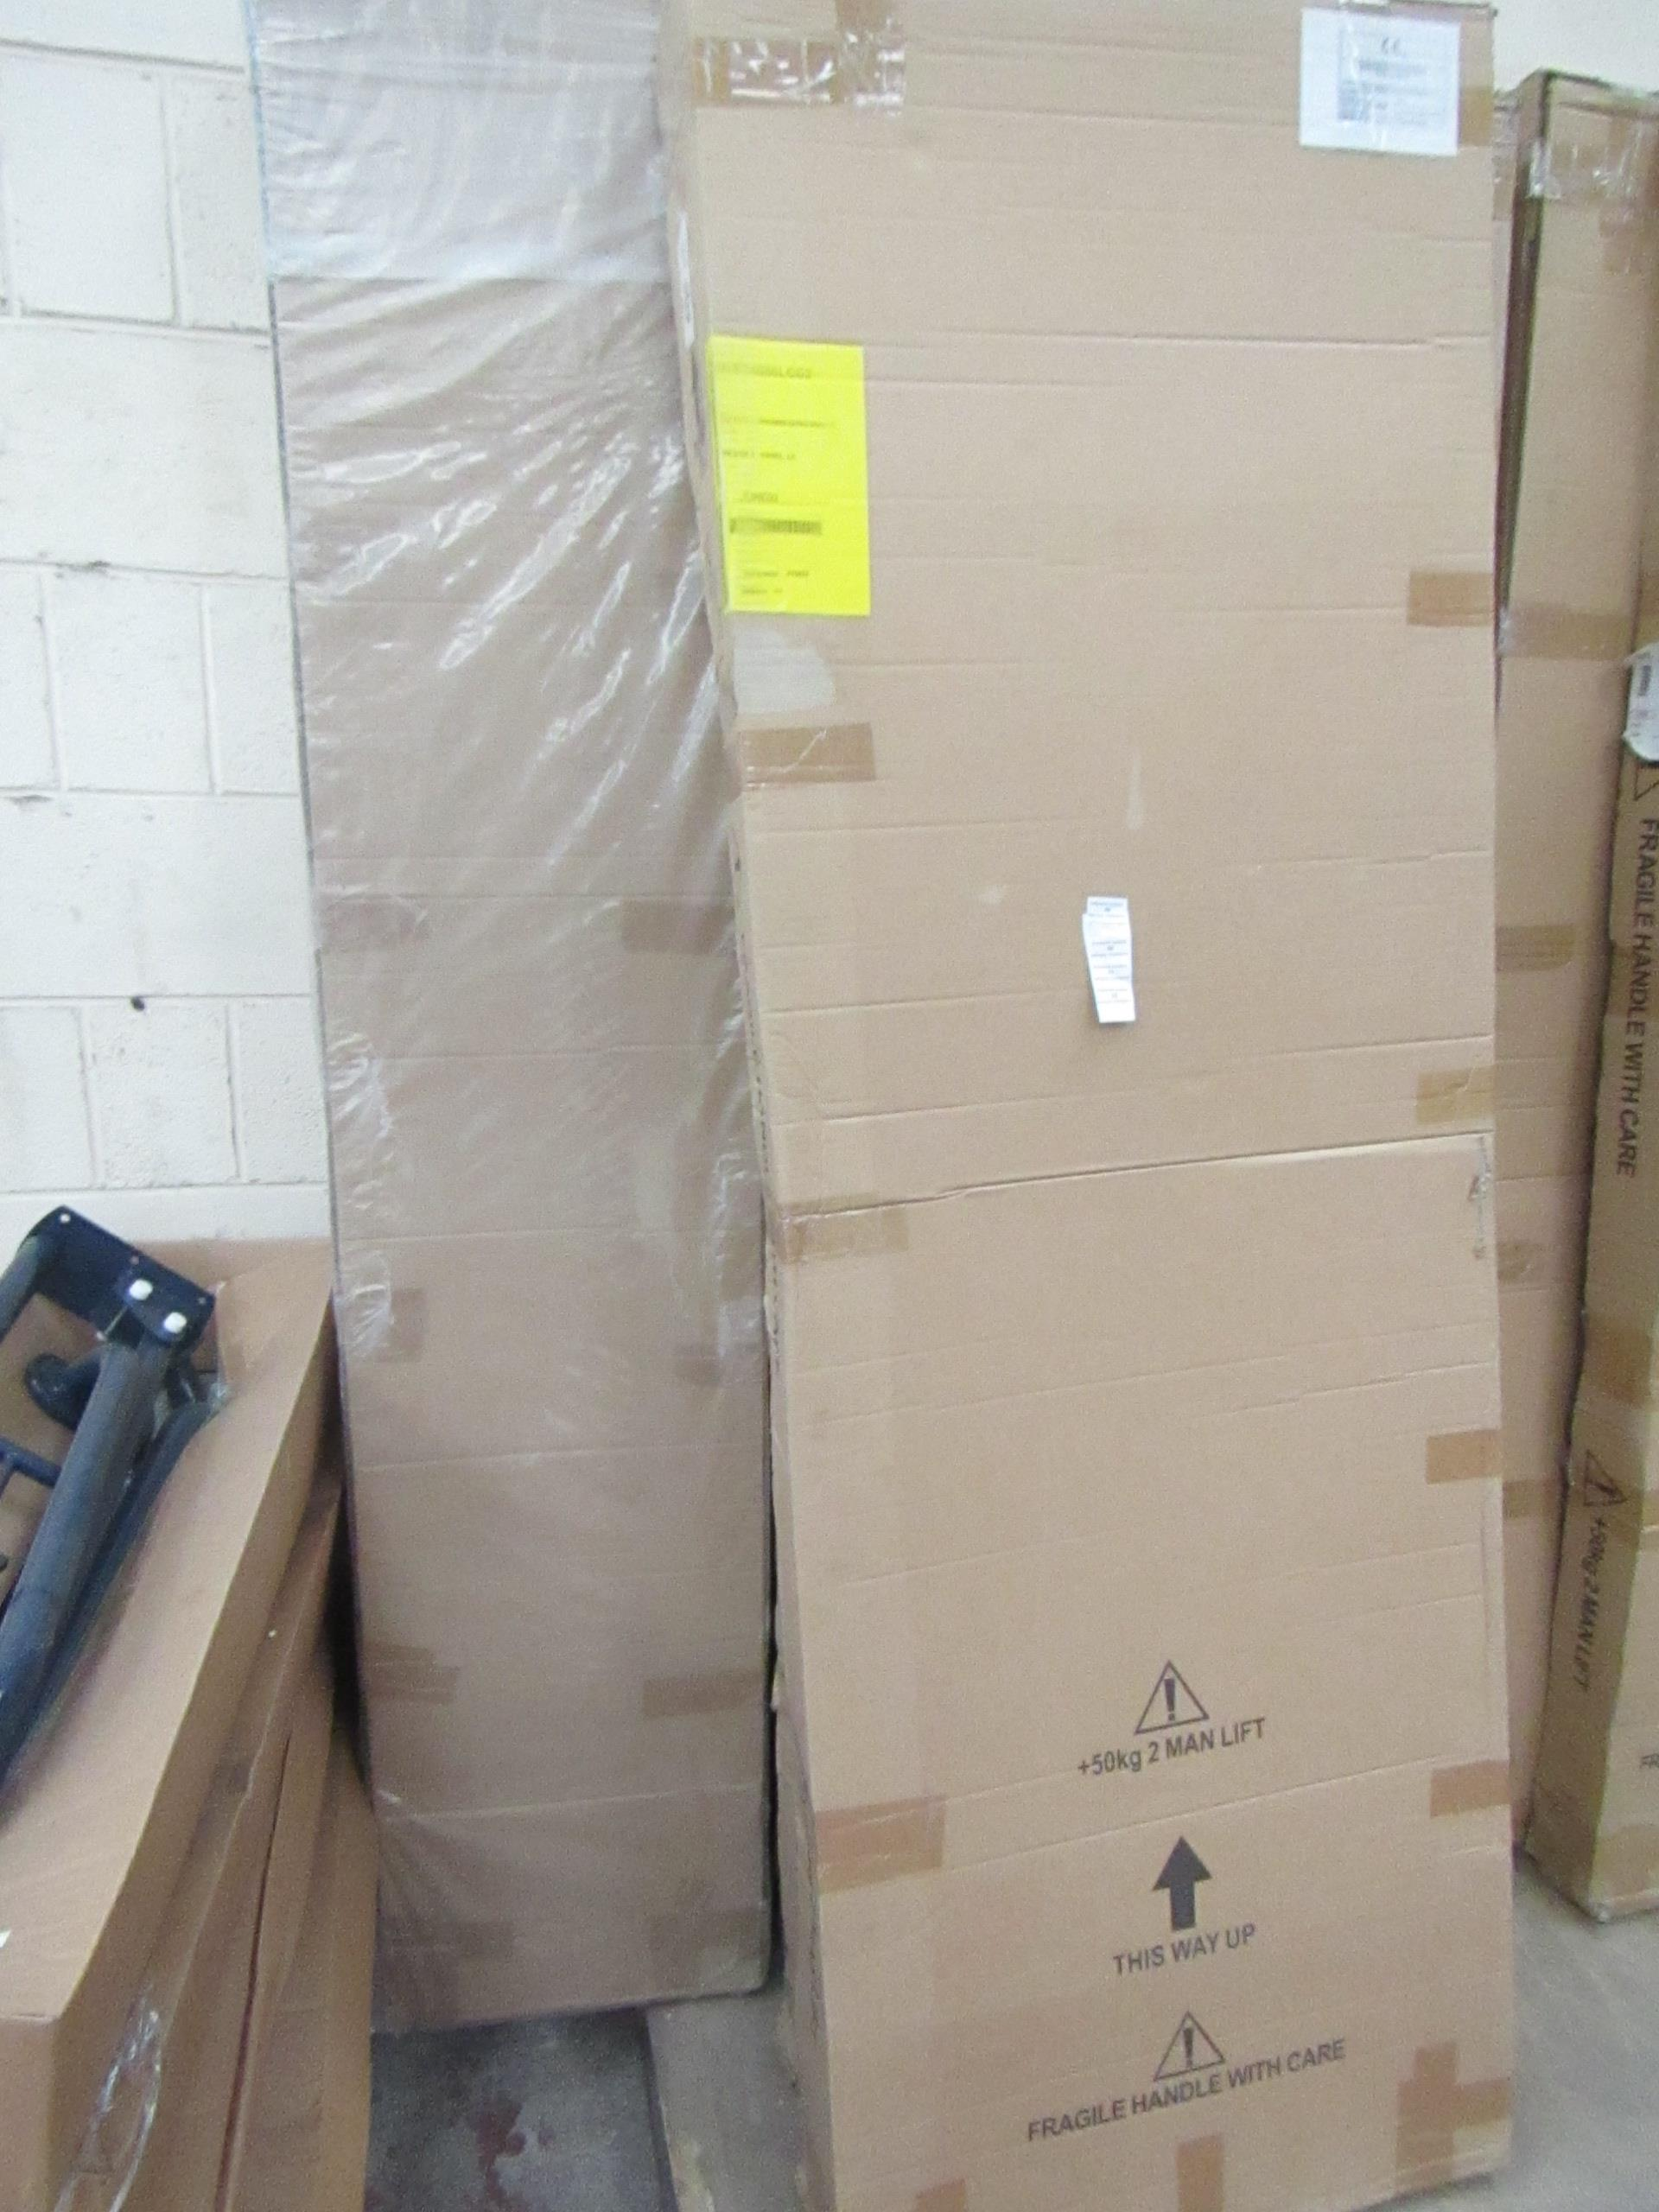 Manhattan glass Quad shower enclosure (no Tray), 1200x800m, unused and boxed, comes in 2 boxes which - Image 2 of 2